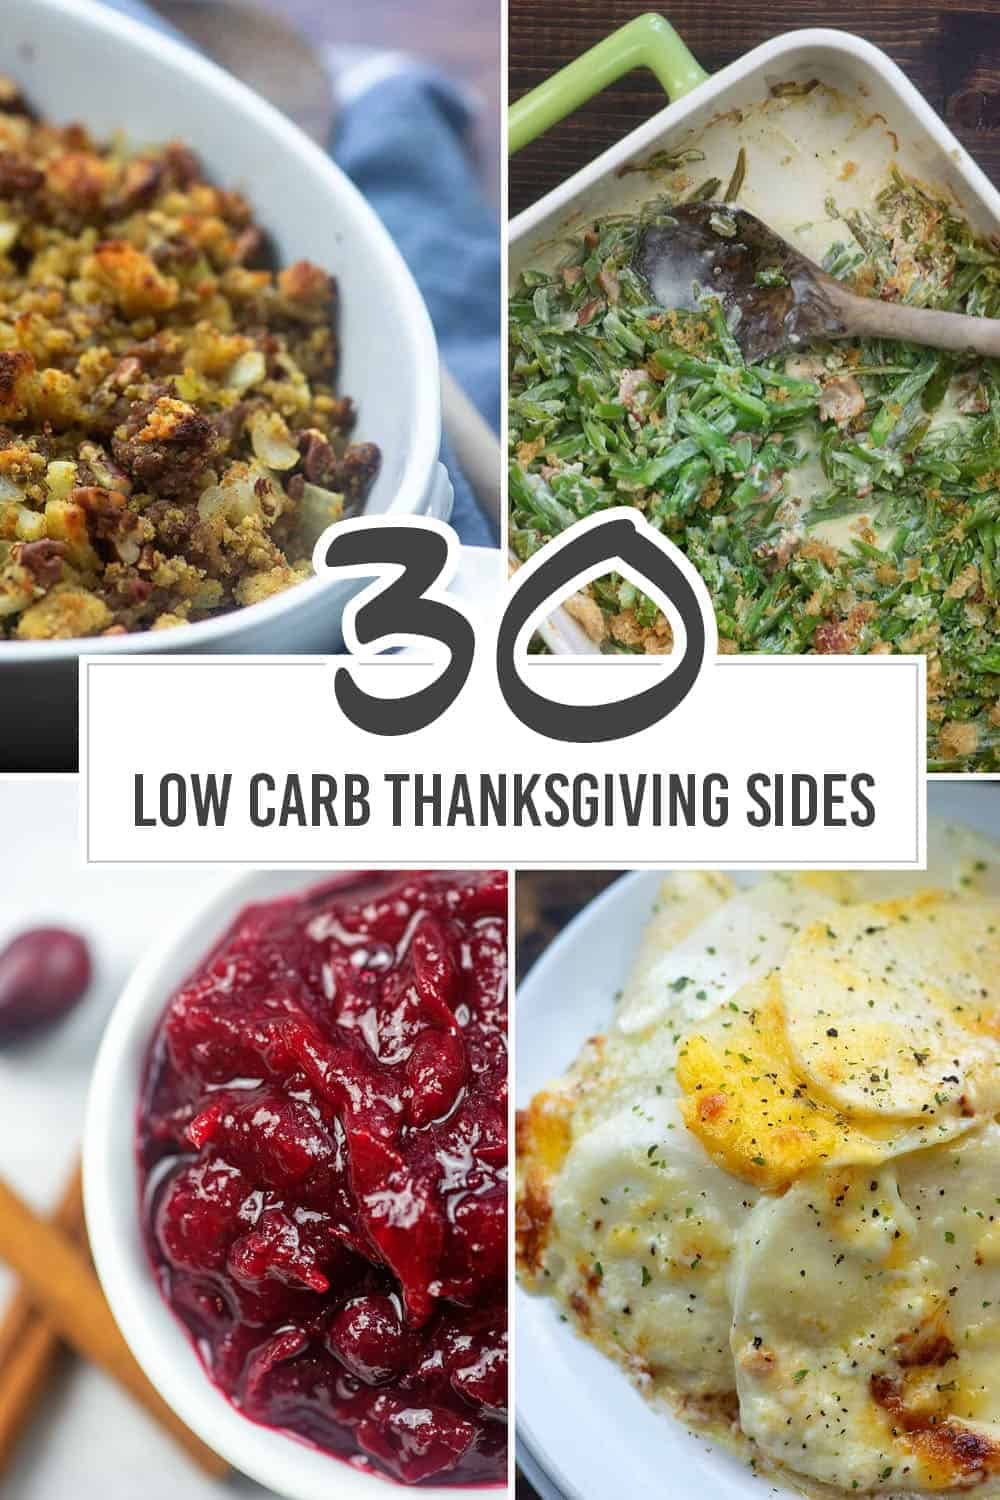 four pictures of low carb dishes: stuffing, green beans, cranberry sauce, and turnips